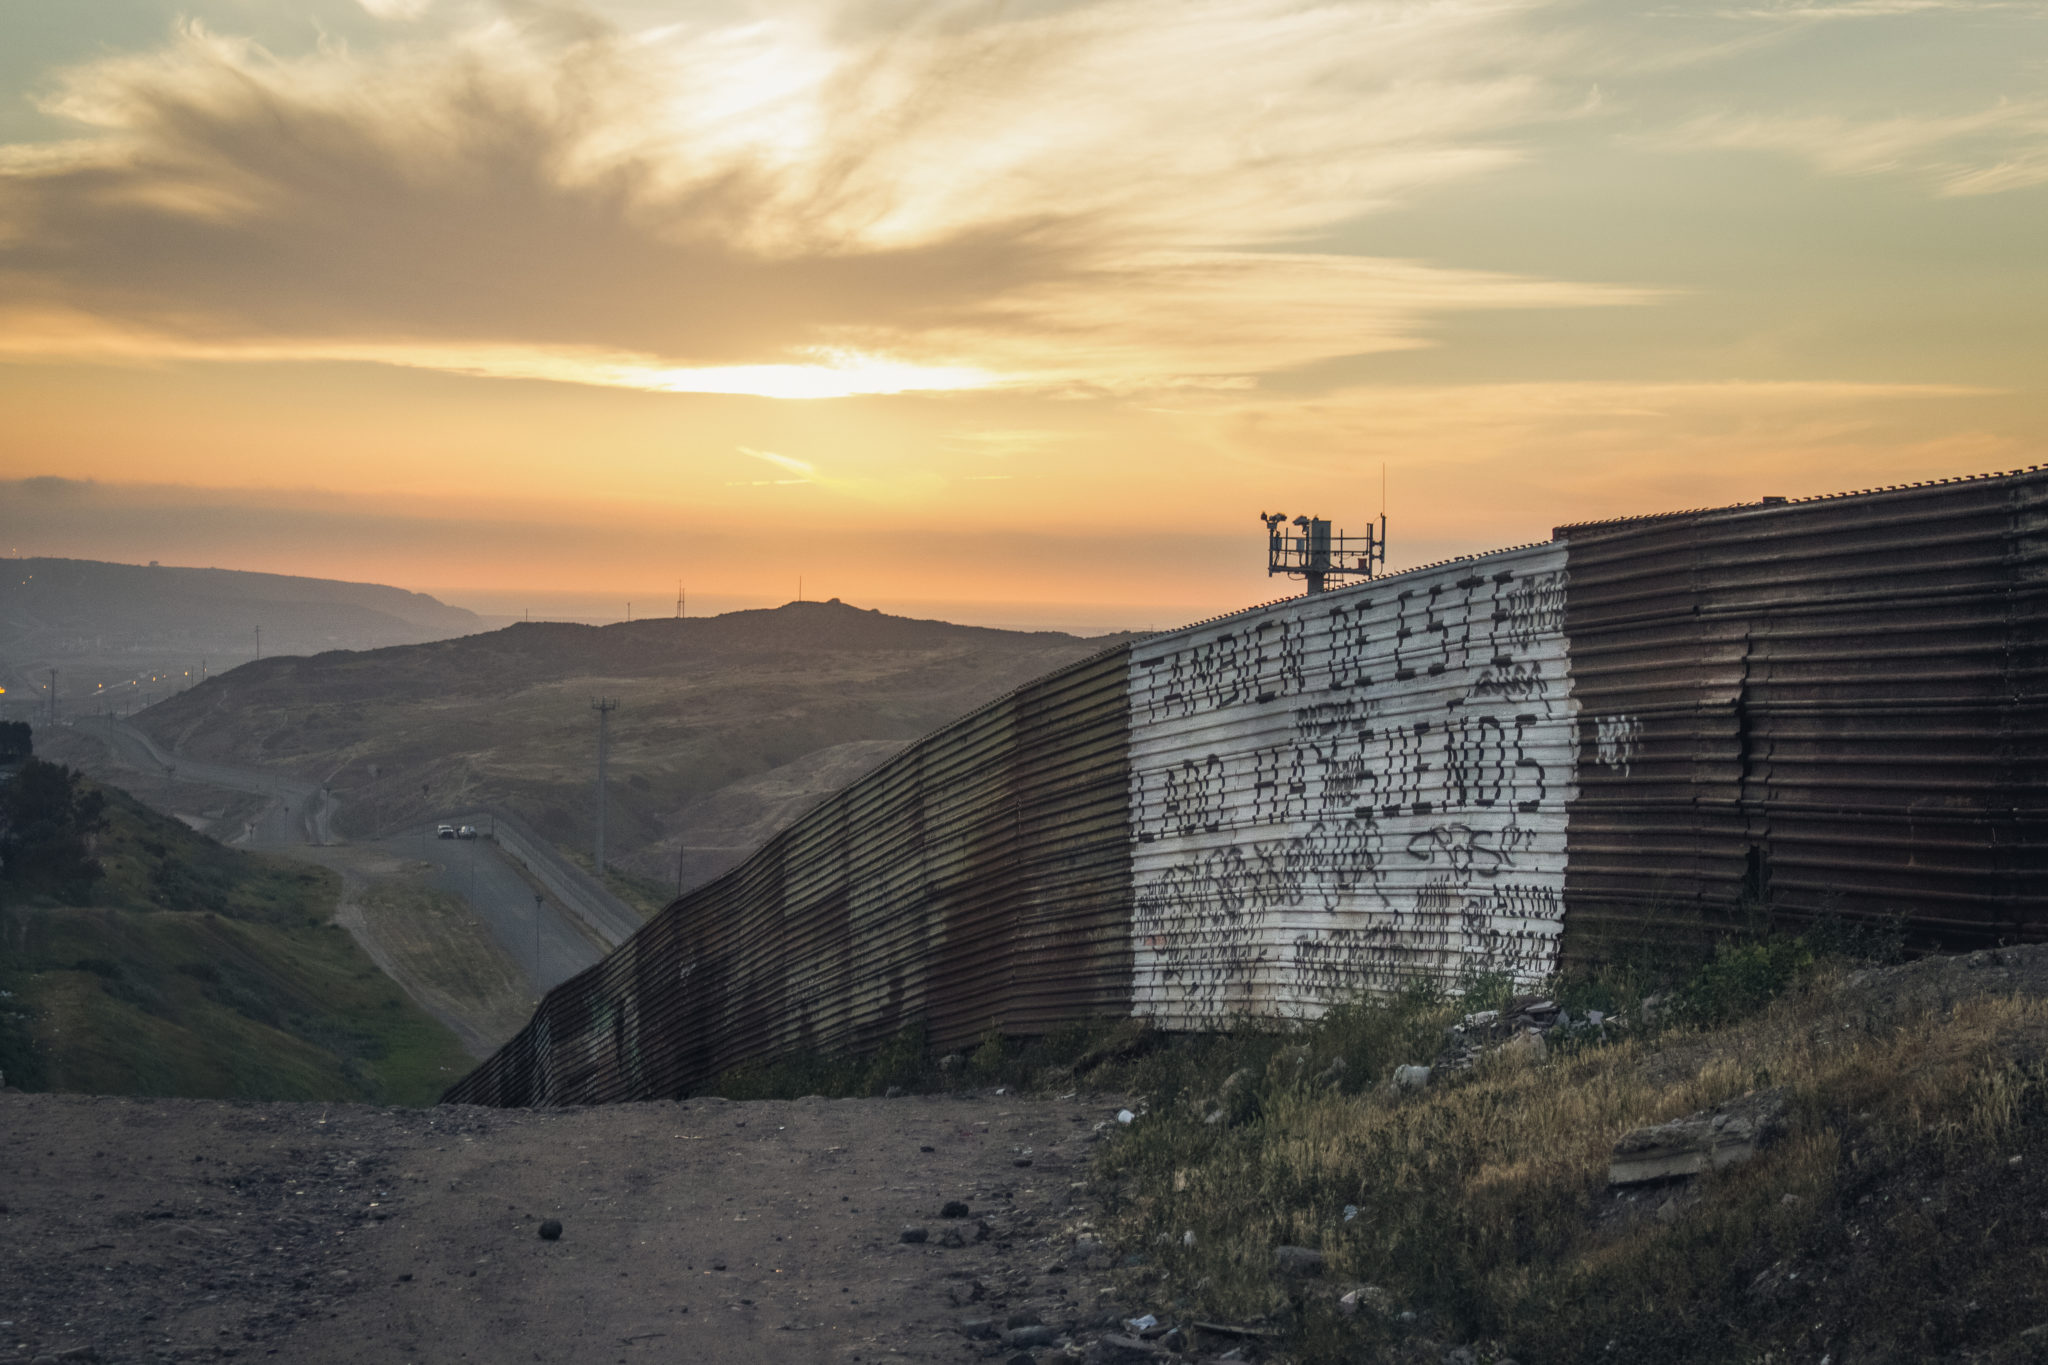 USA: Stop border officials forcibly separating families